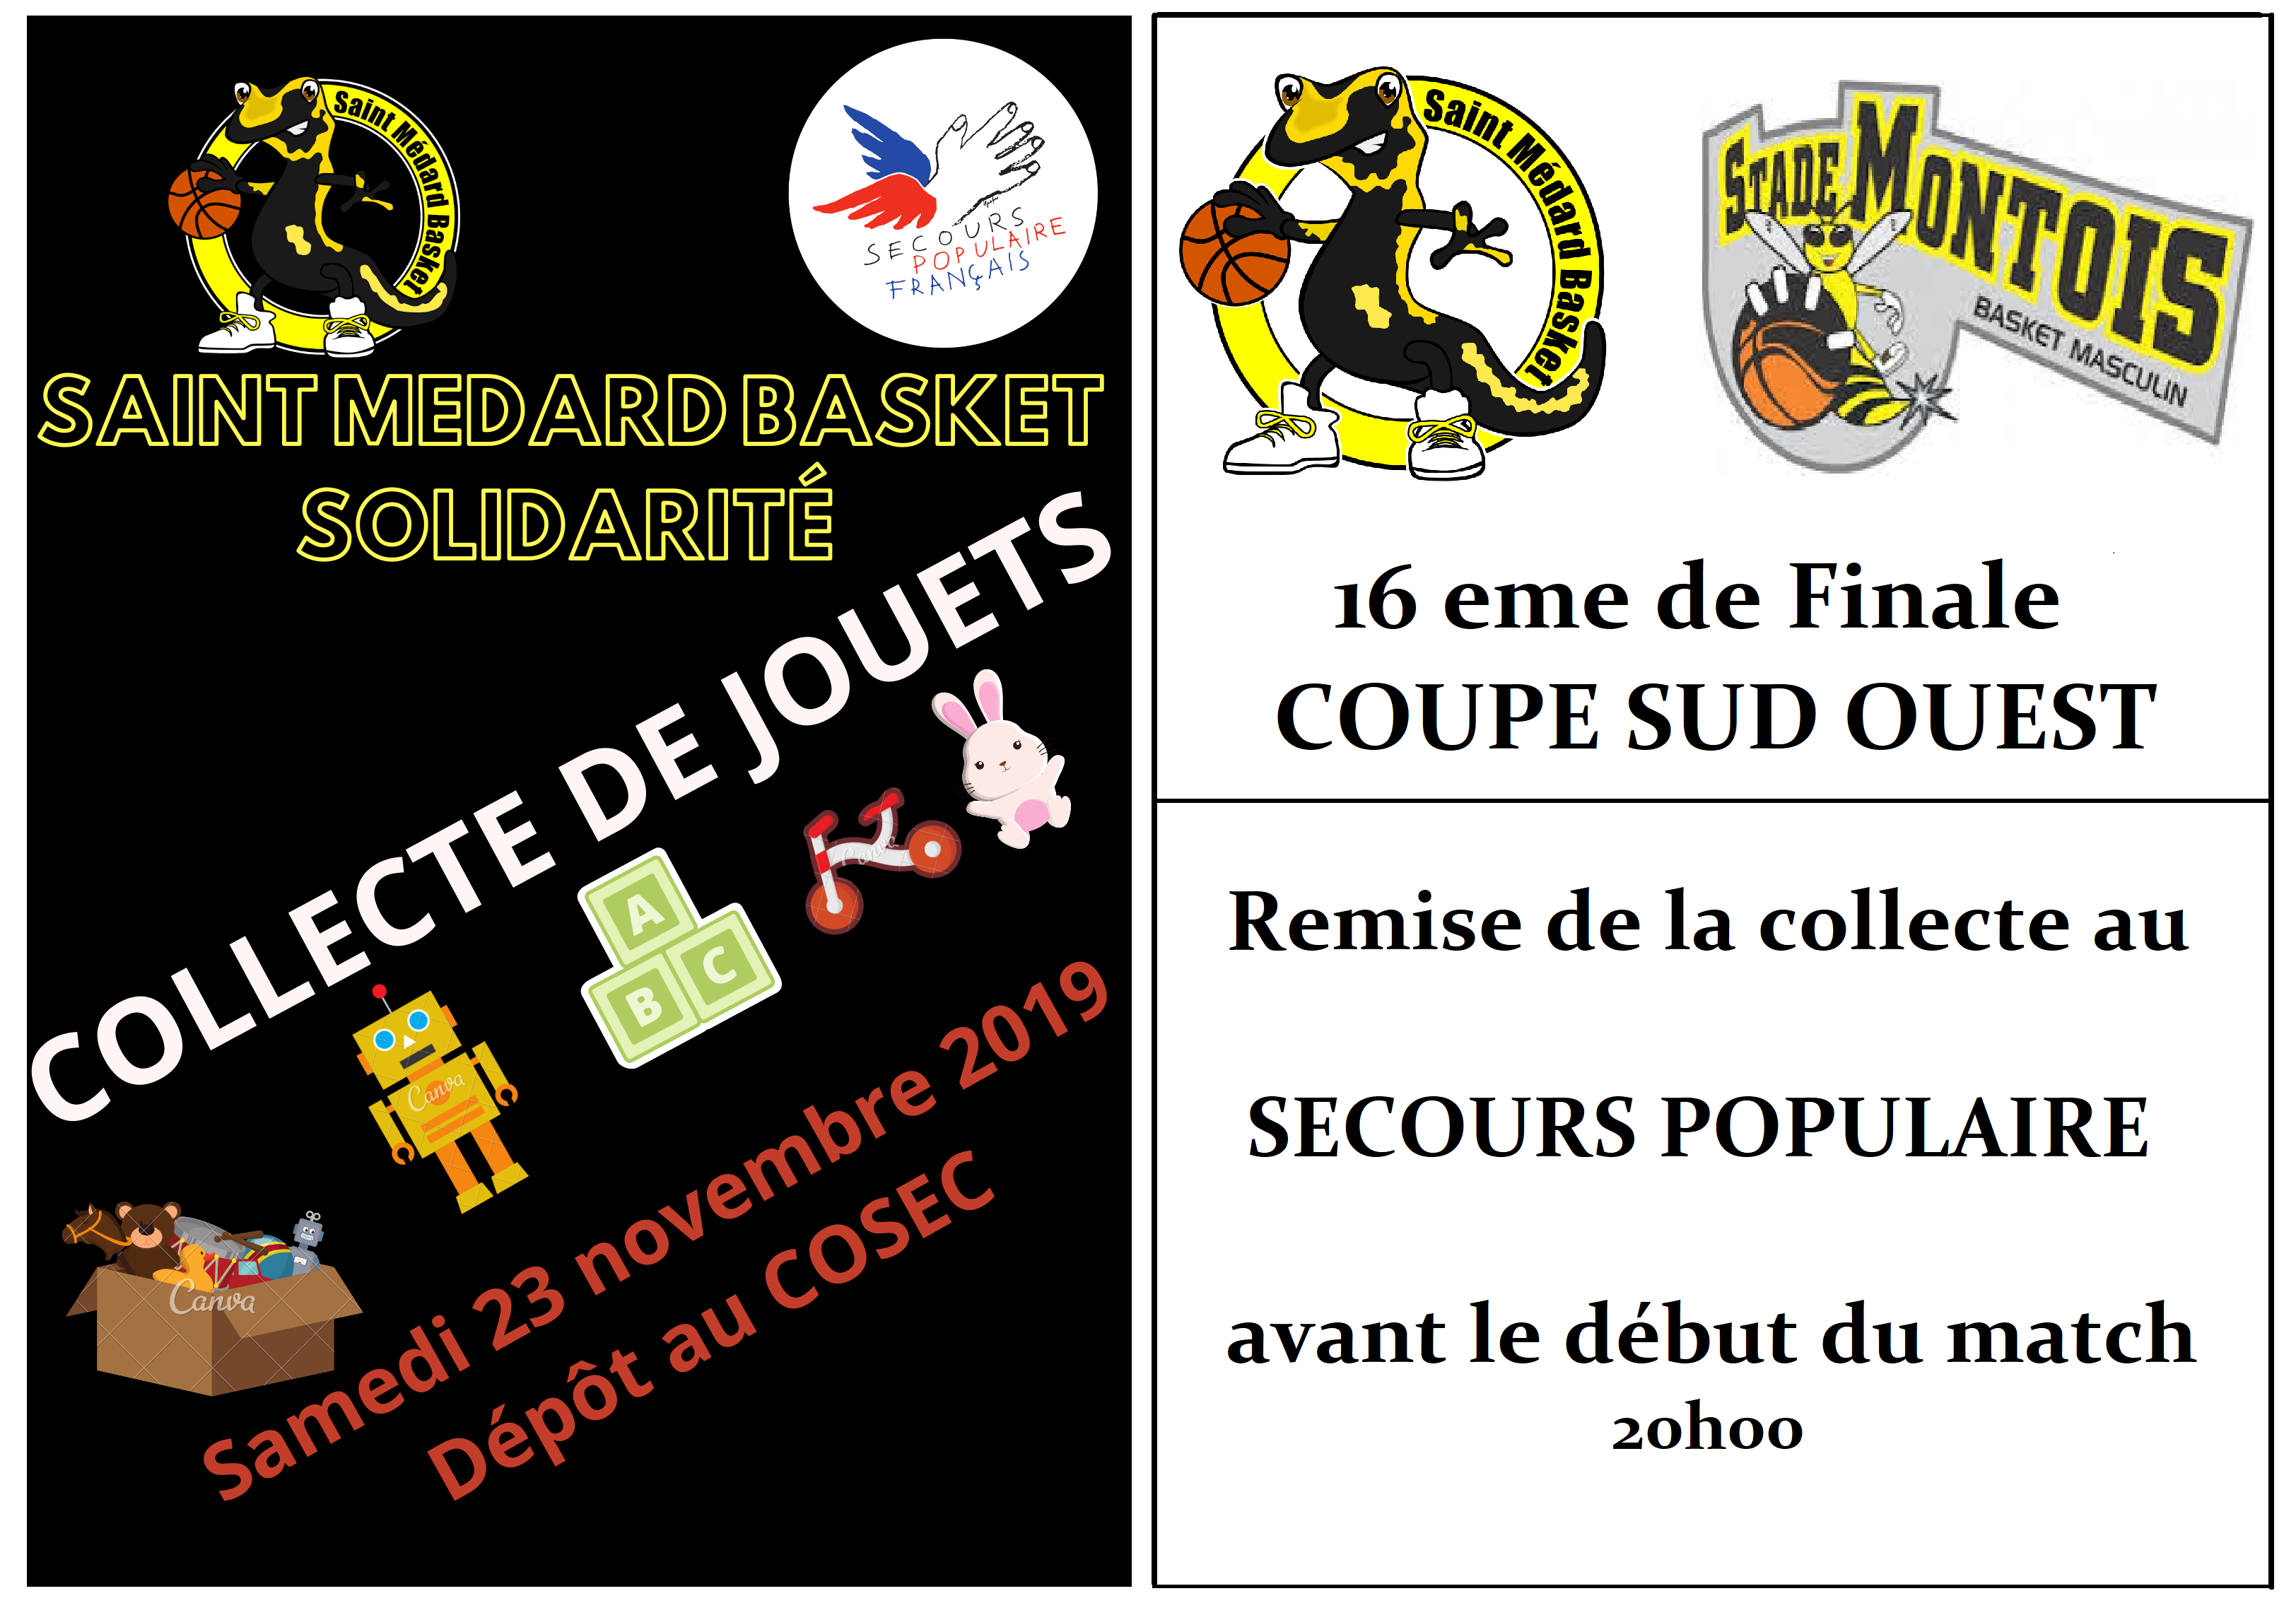 OPERATION SOLIDARITE 23 Novembre 2019